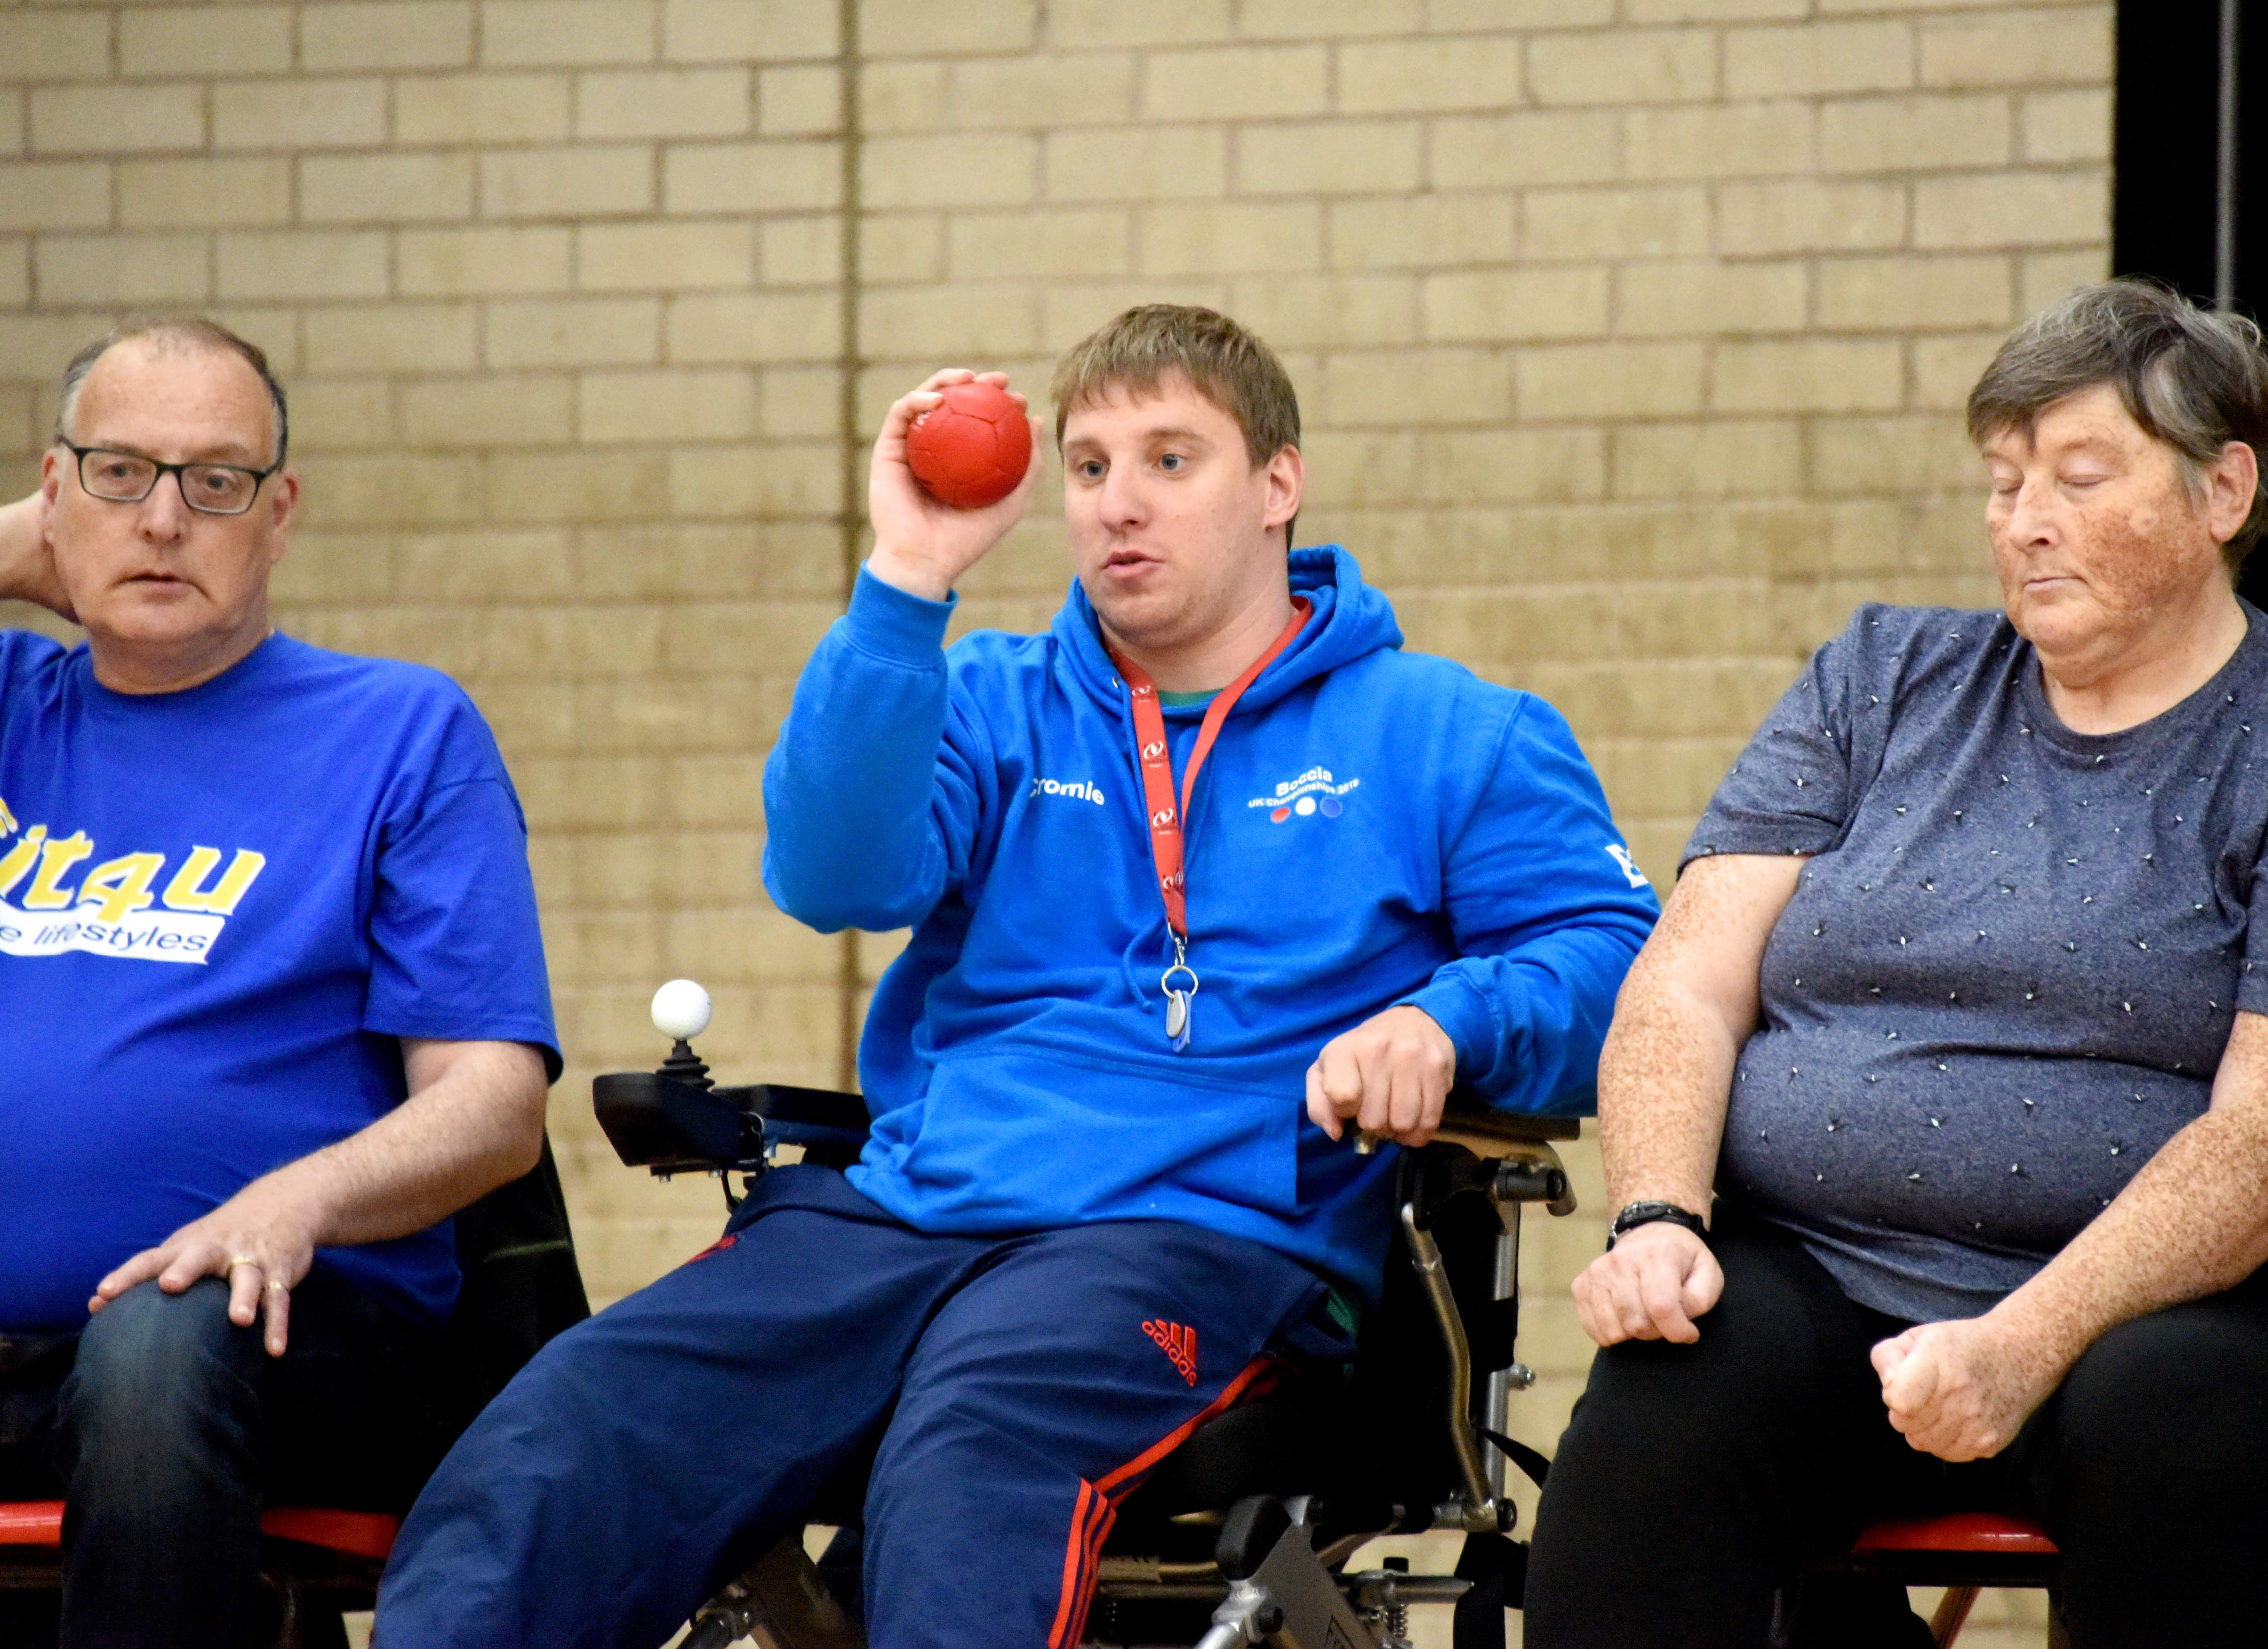 An image of Scott Cromie playing Boccia